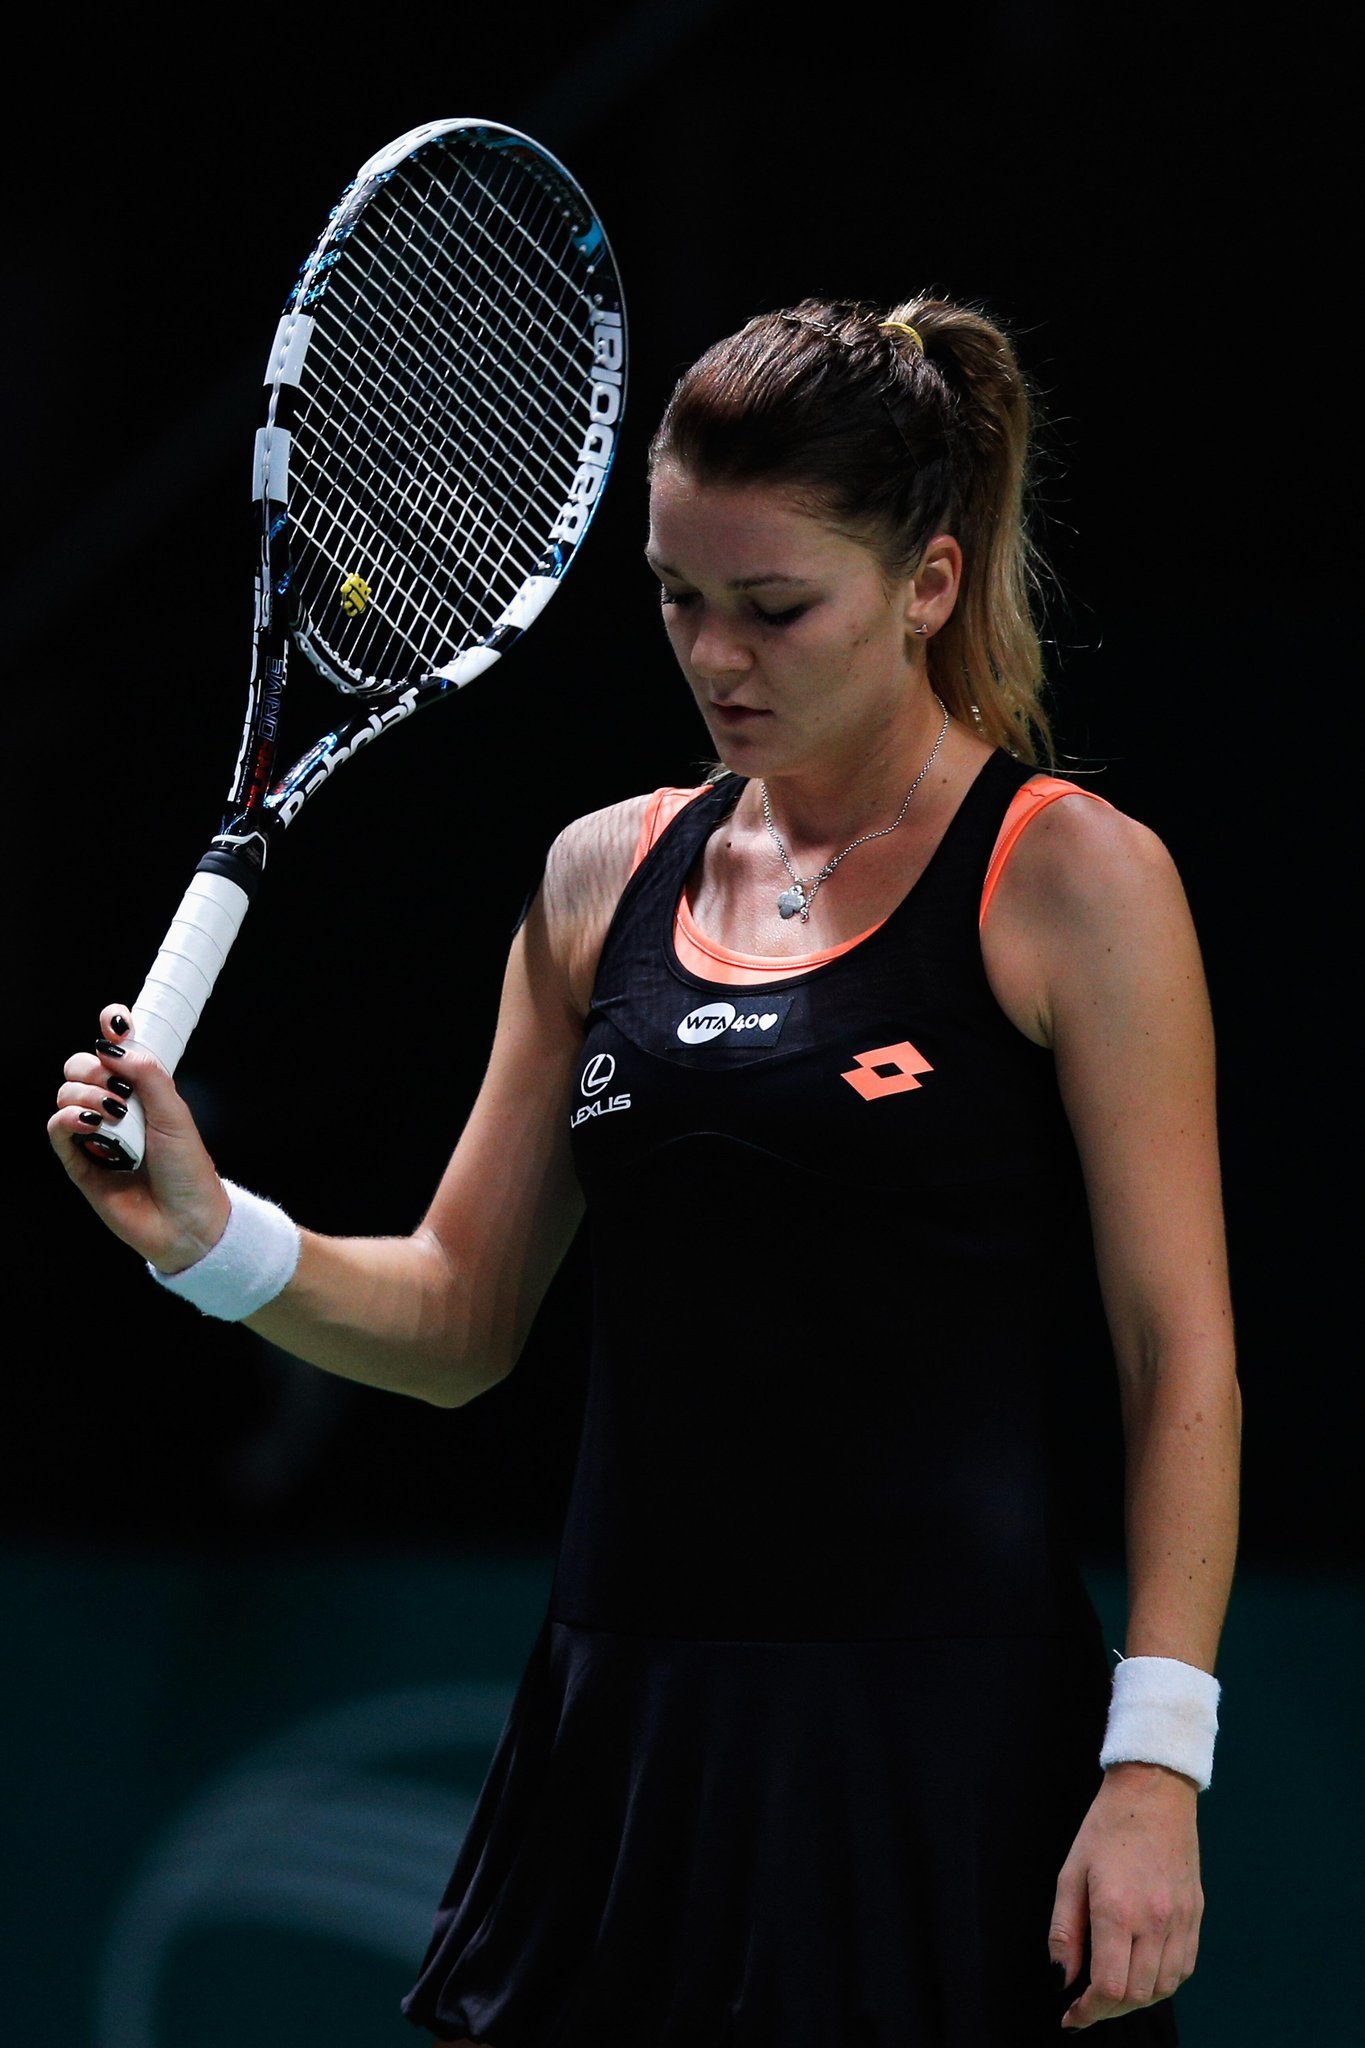 Aga Radwanska went 0-3 this week (GETTY) http://t.co/l7Fkoj6cGh